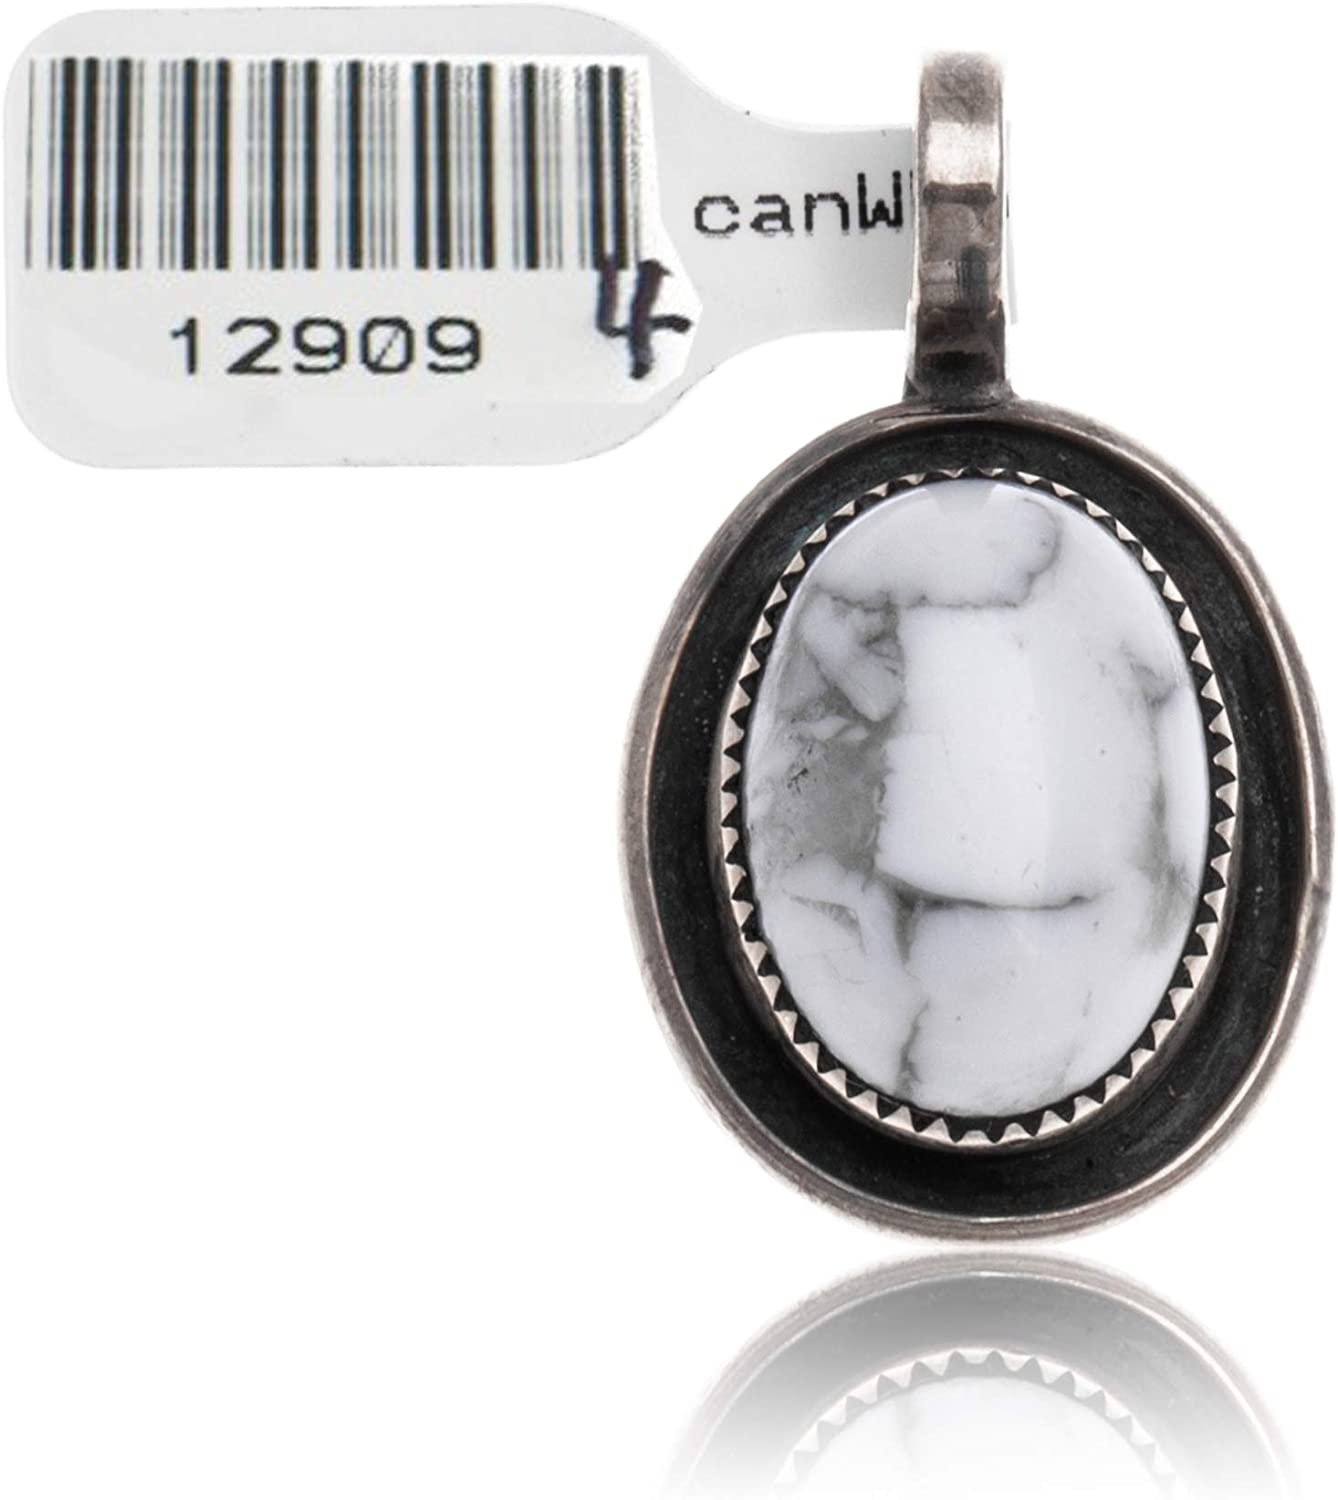 $100Tag White Howlite Silver Certified Navajo Native American Pendant 12909-4 Made by Loma Siiva